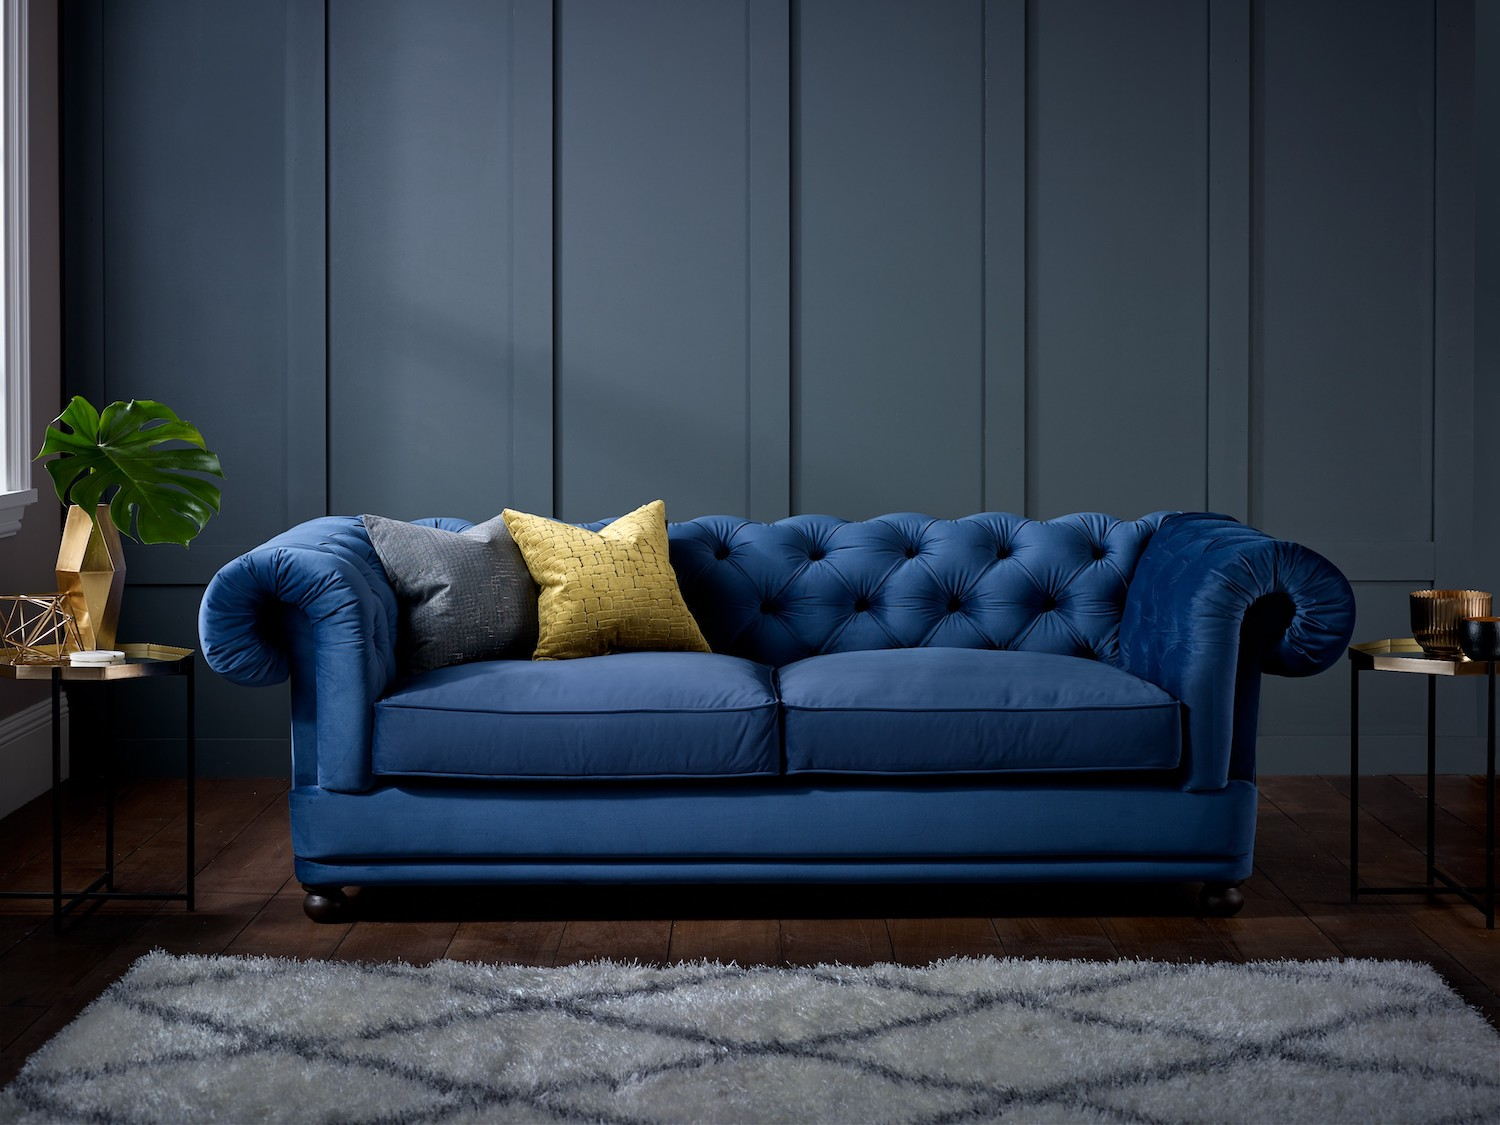 Living It Up Cara Sofa upholstered in Regency Blue Velvet